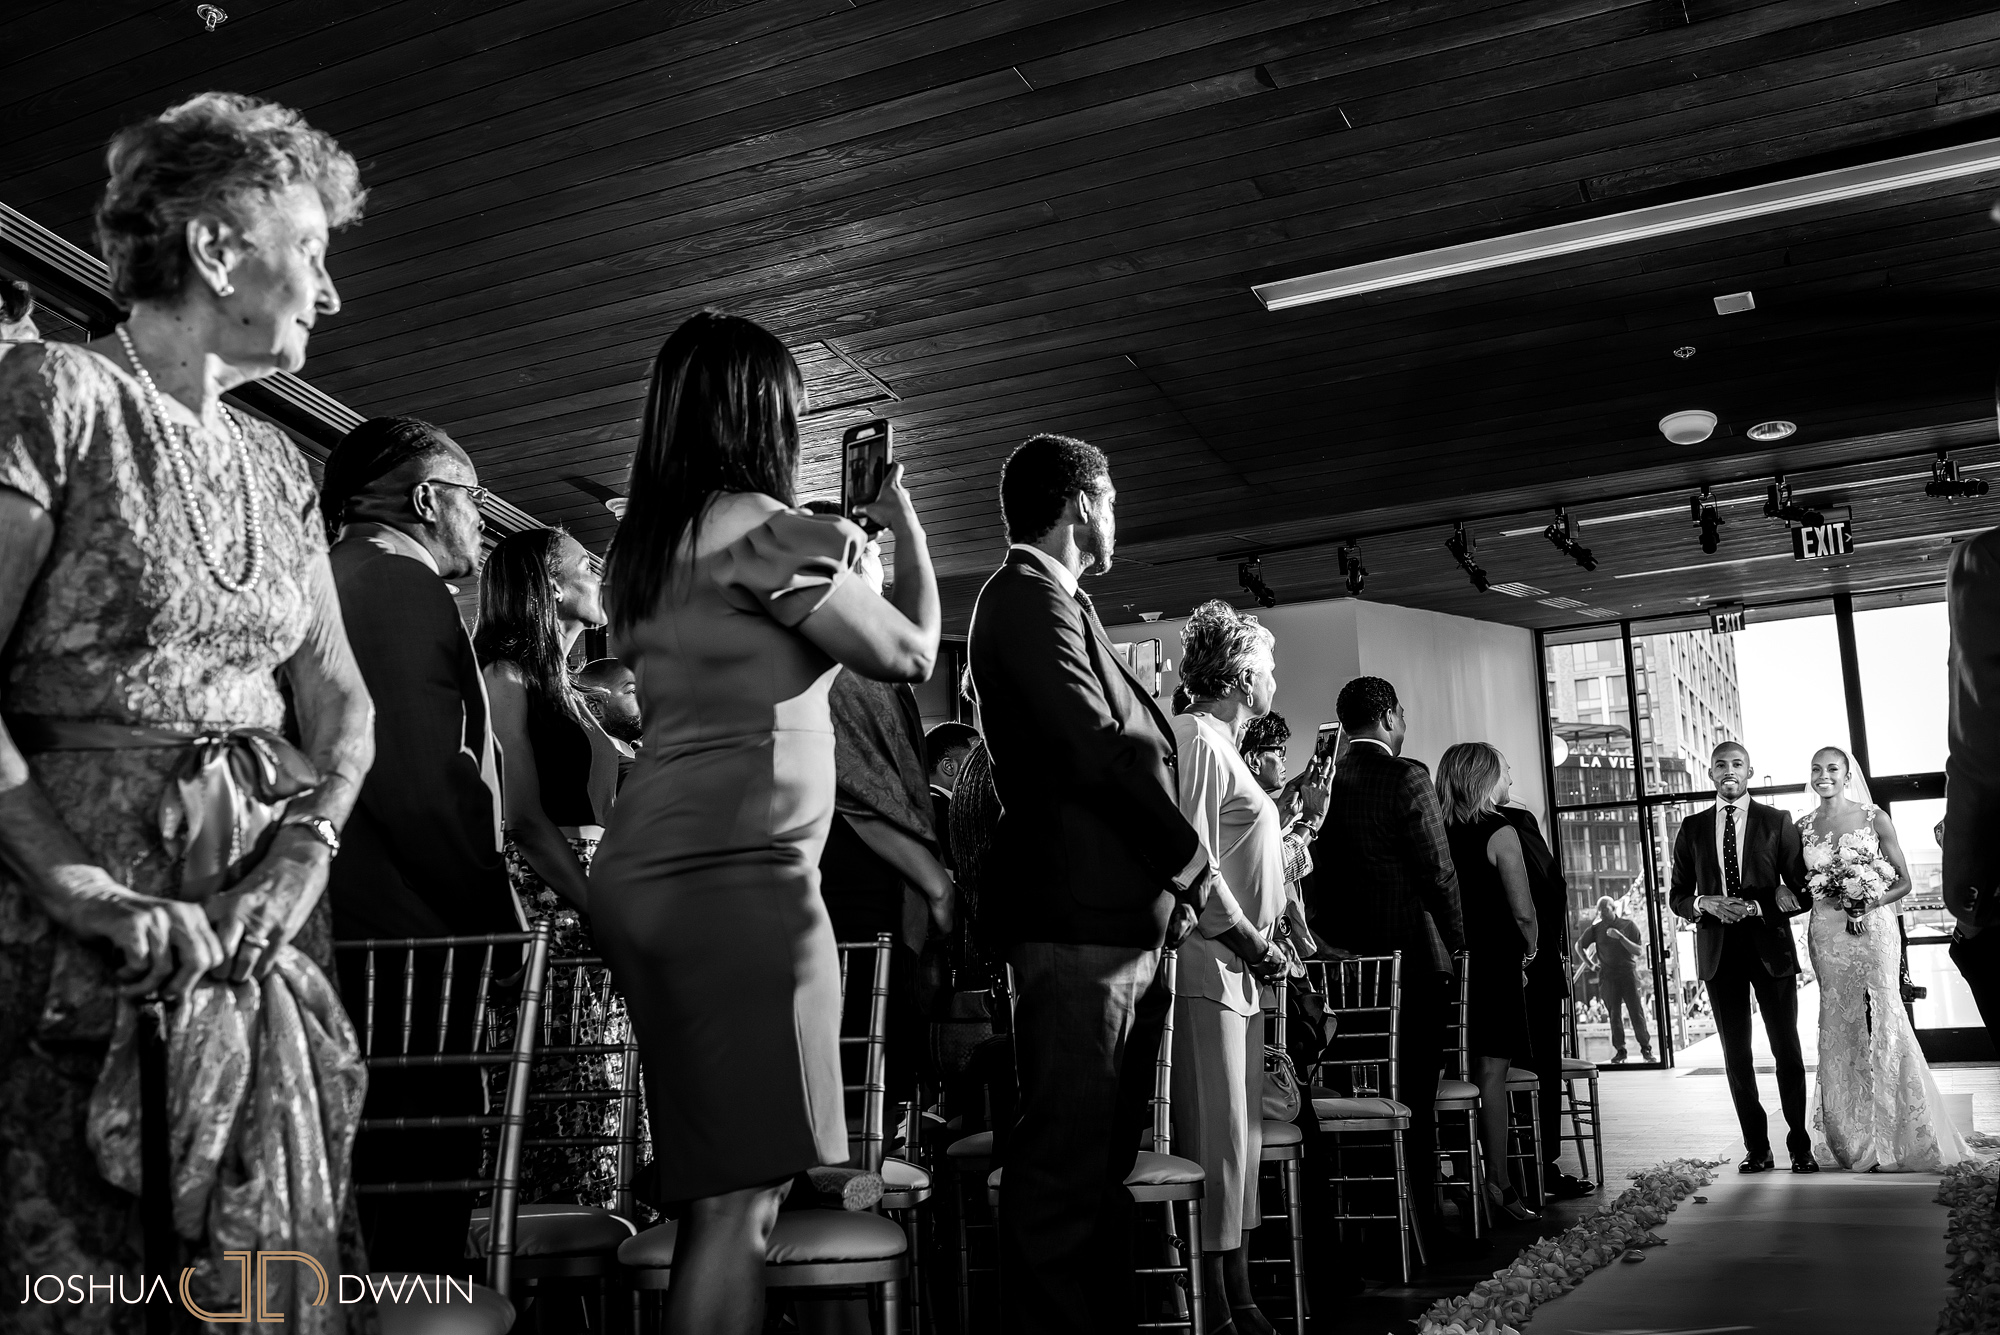 leshia-adam-017-dc-wharf-wedding-photos-joshua-dwain-photographer